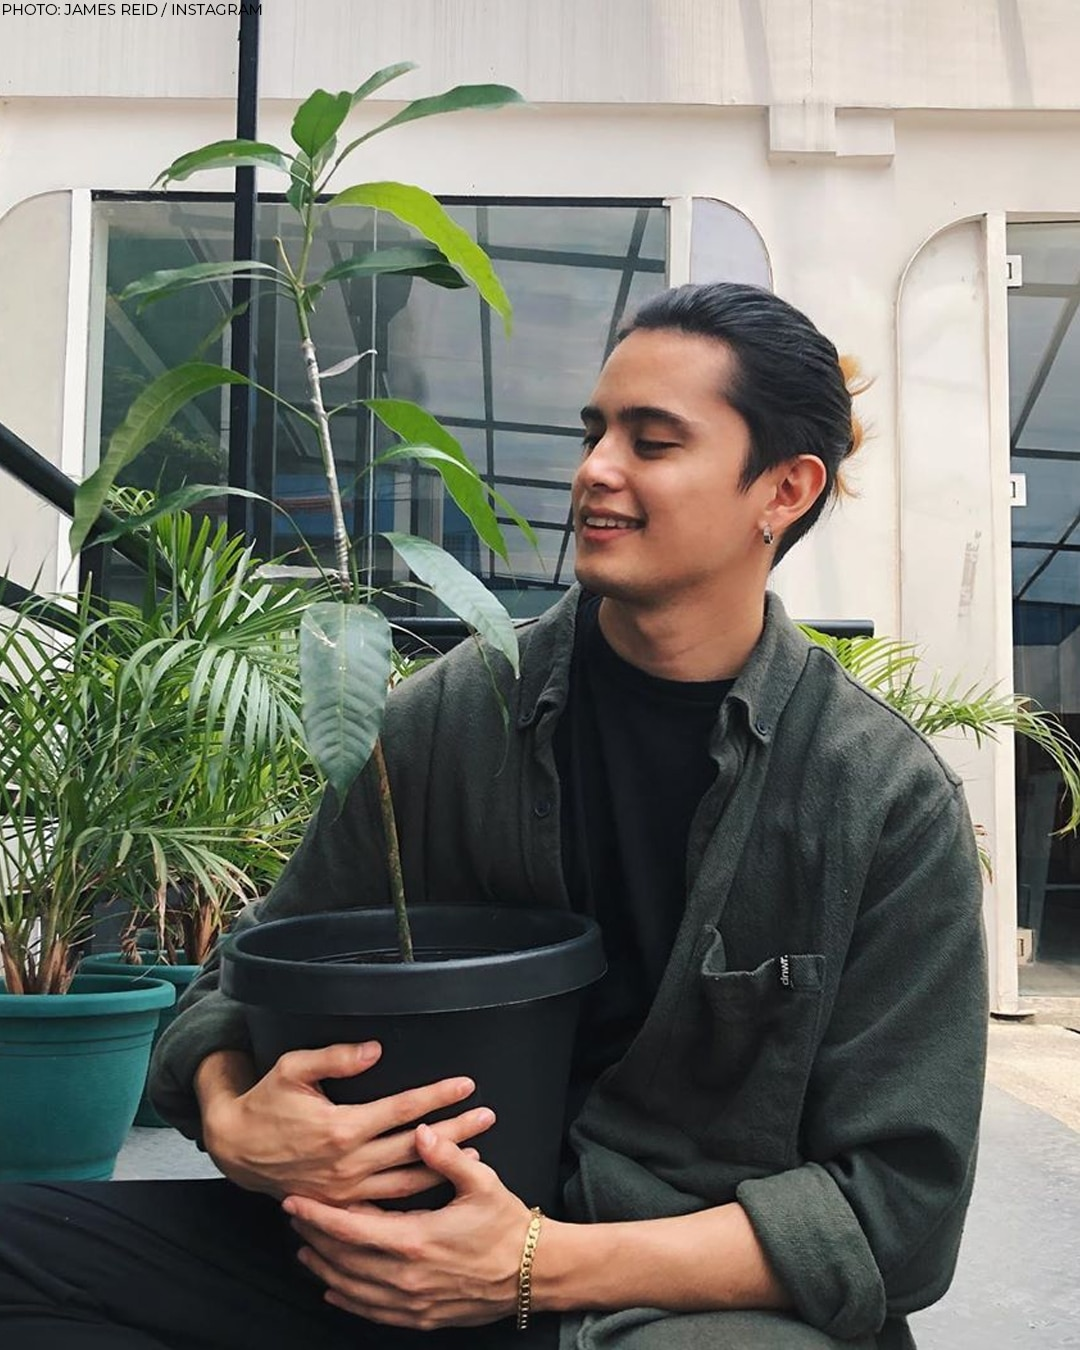 As the Ambassador of Food Security, James Reid is using his time to help cultivate Philippine agriculture!